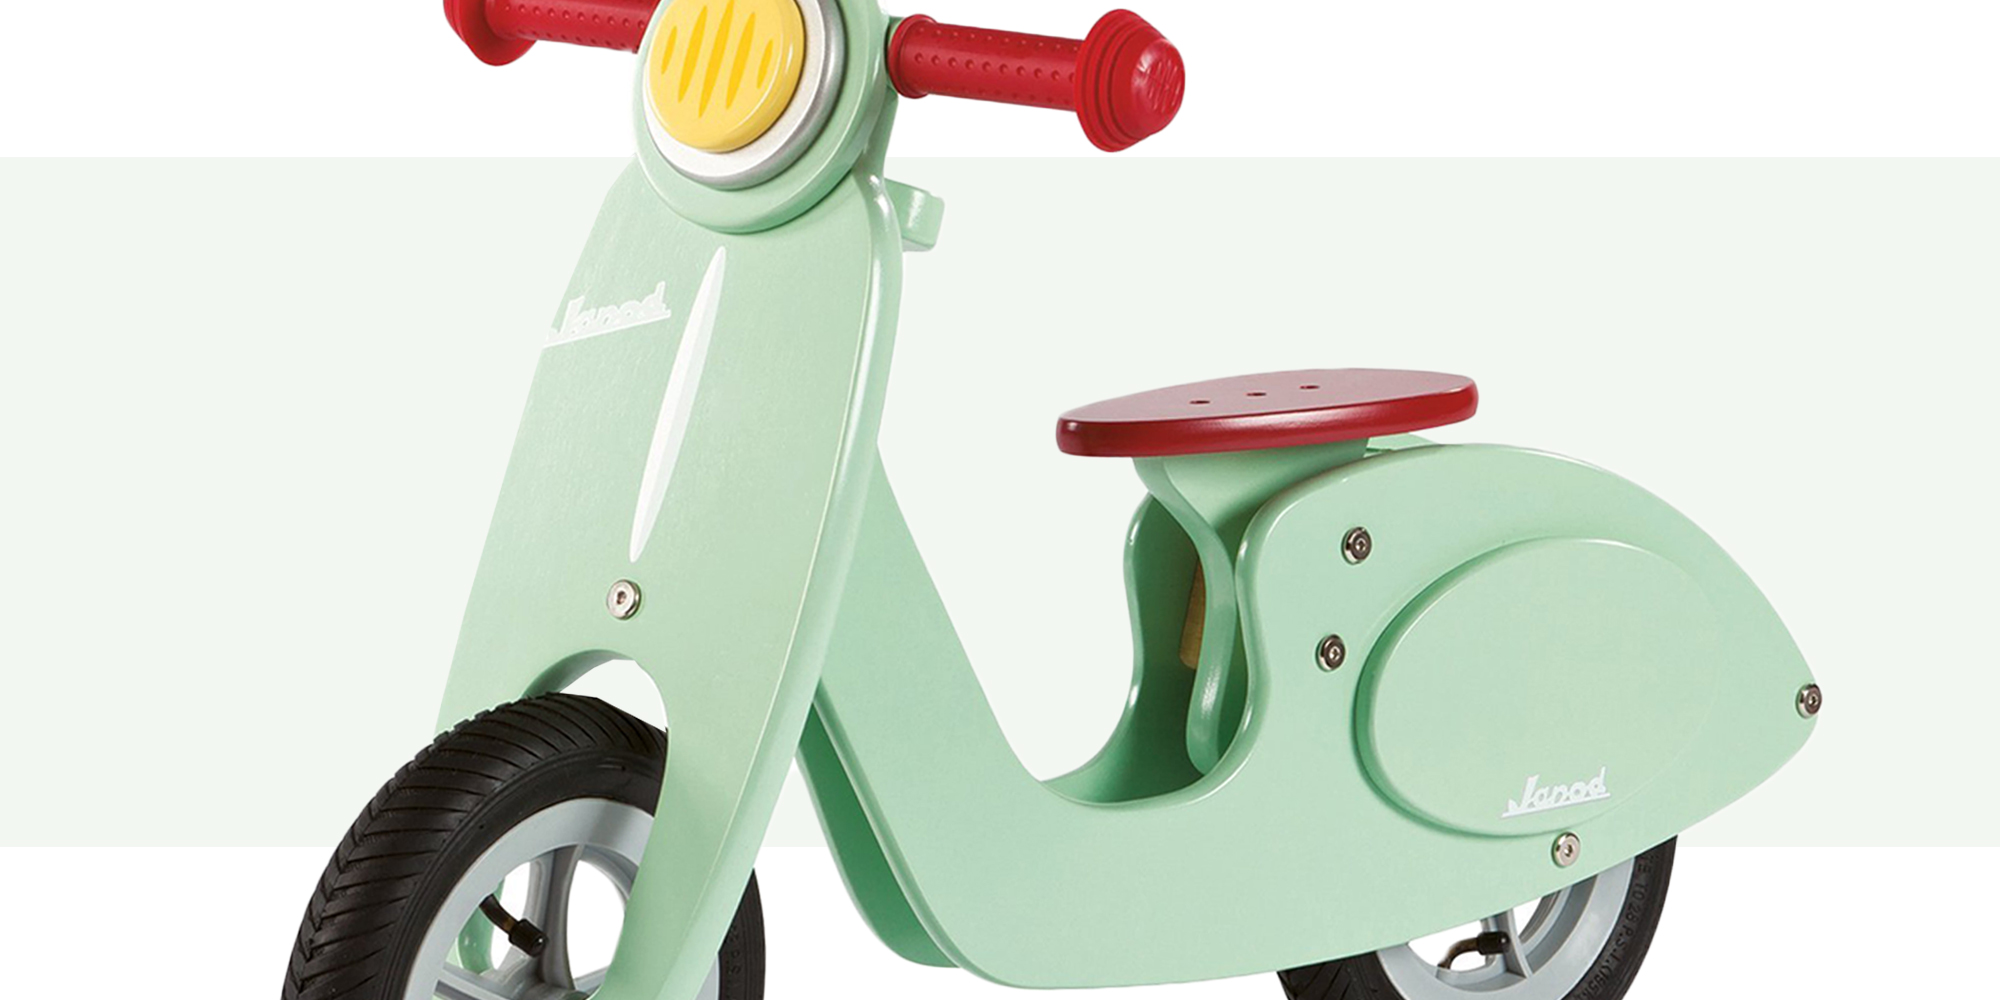 Retro Small Kitchen Appliances 11 Best Scooters For Kids In 2018 Cheap 3 Wheel Scooters